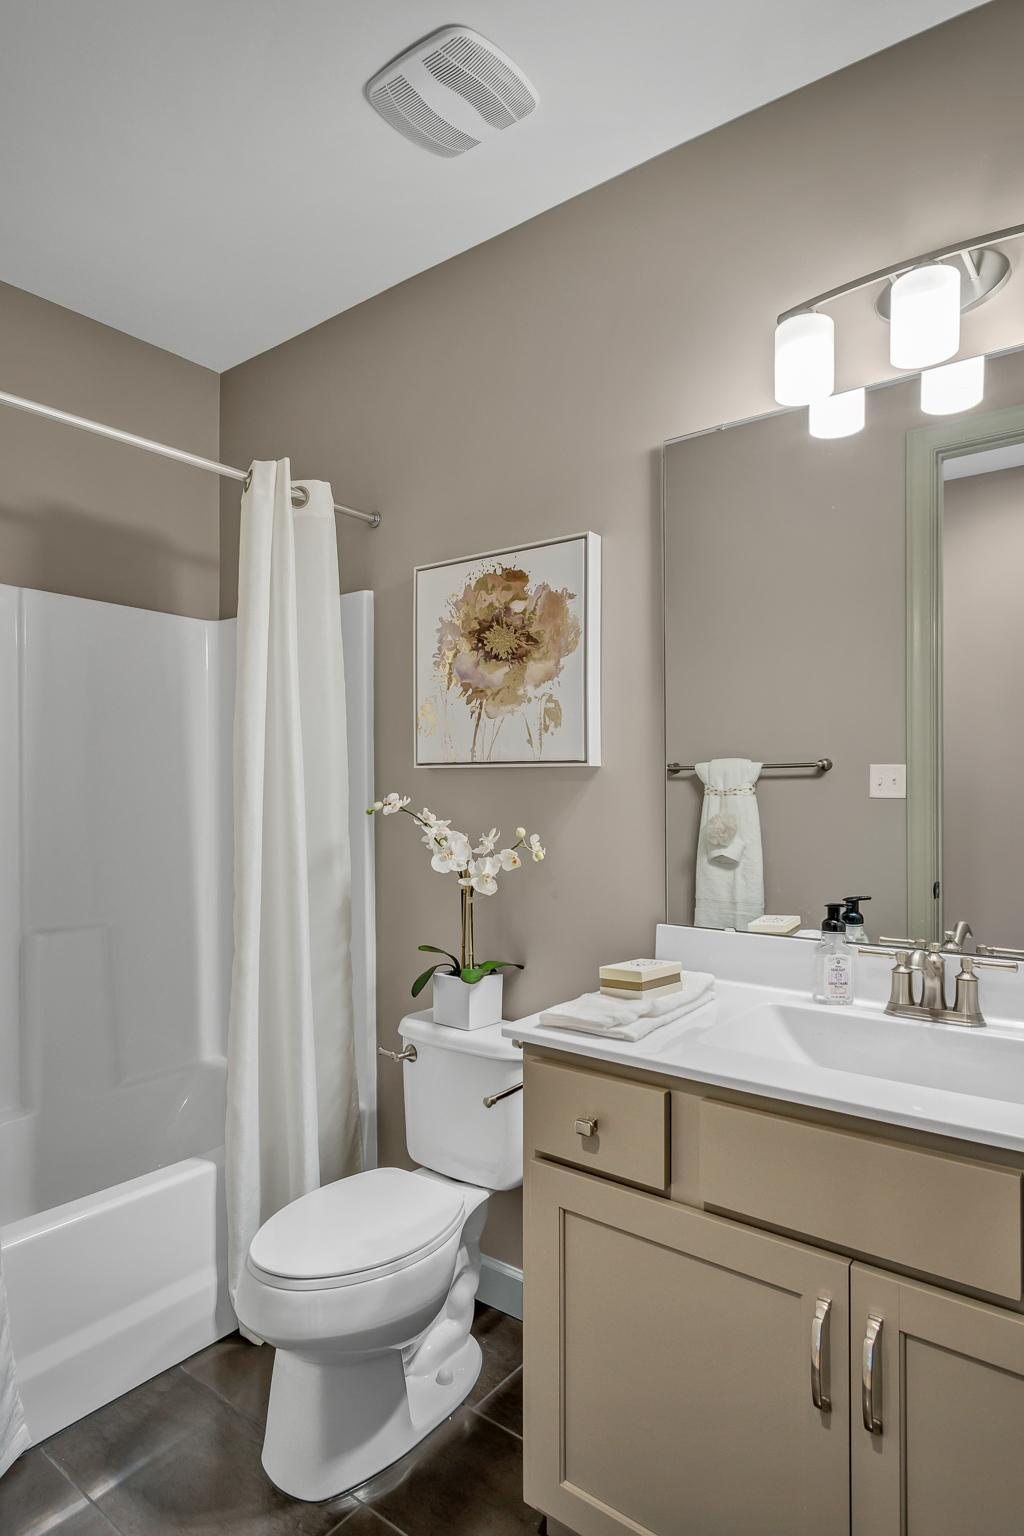 Bathroom featured in the Woodside - Heritage By Fischer & Frichtel in St. Louis, MO